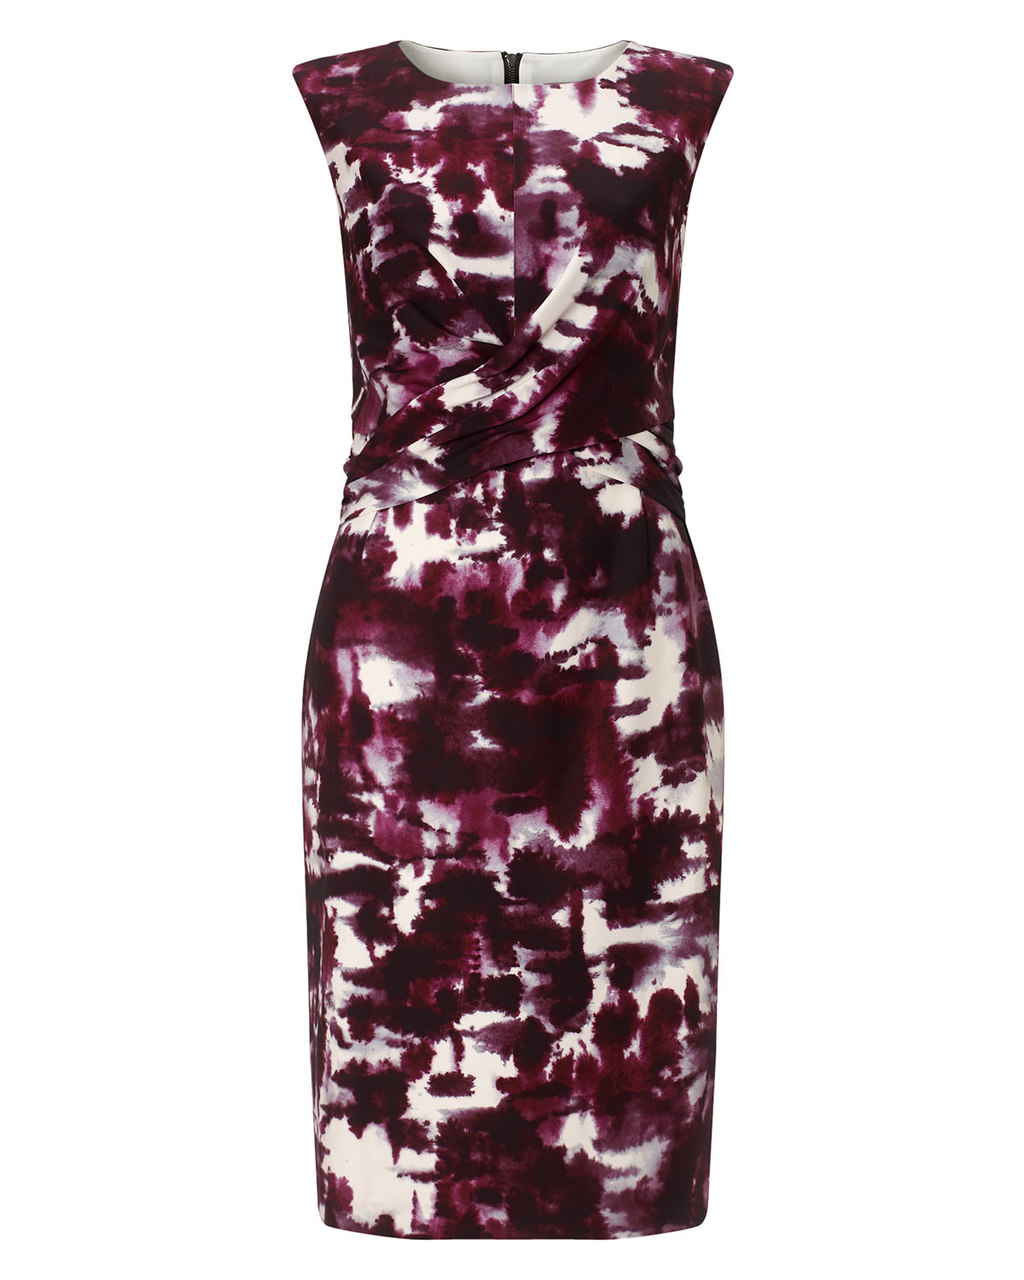 Bruges Print Dress - style: shift; neckline: round neck; fit: tailored/fitted; sleeve style: sleeveless; secondary colour: white; predominant colour: aubergine; occasions: evening, occasion; length: just above the knee; fibres: polyester/polyamide - stretch; sleeve length: sleeveless; pattern type: fabric; pattern size: big & busy; pattern: patterned/print; texture group: jersey - stretchy/drapey; season: a/w 2015; wardrobe: event